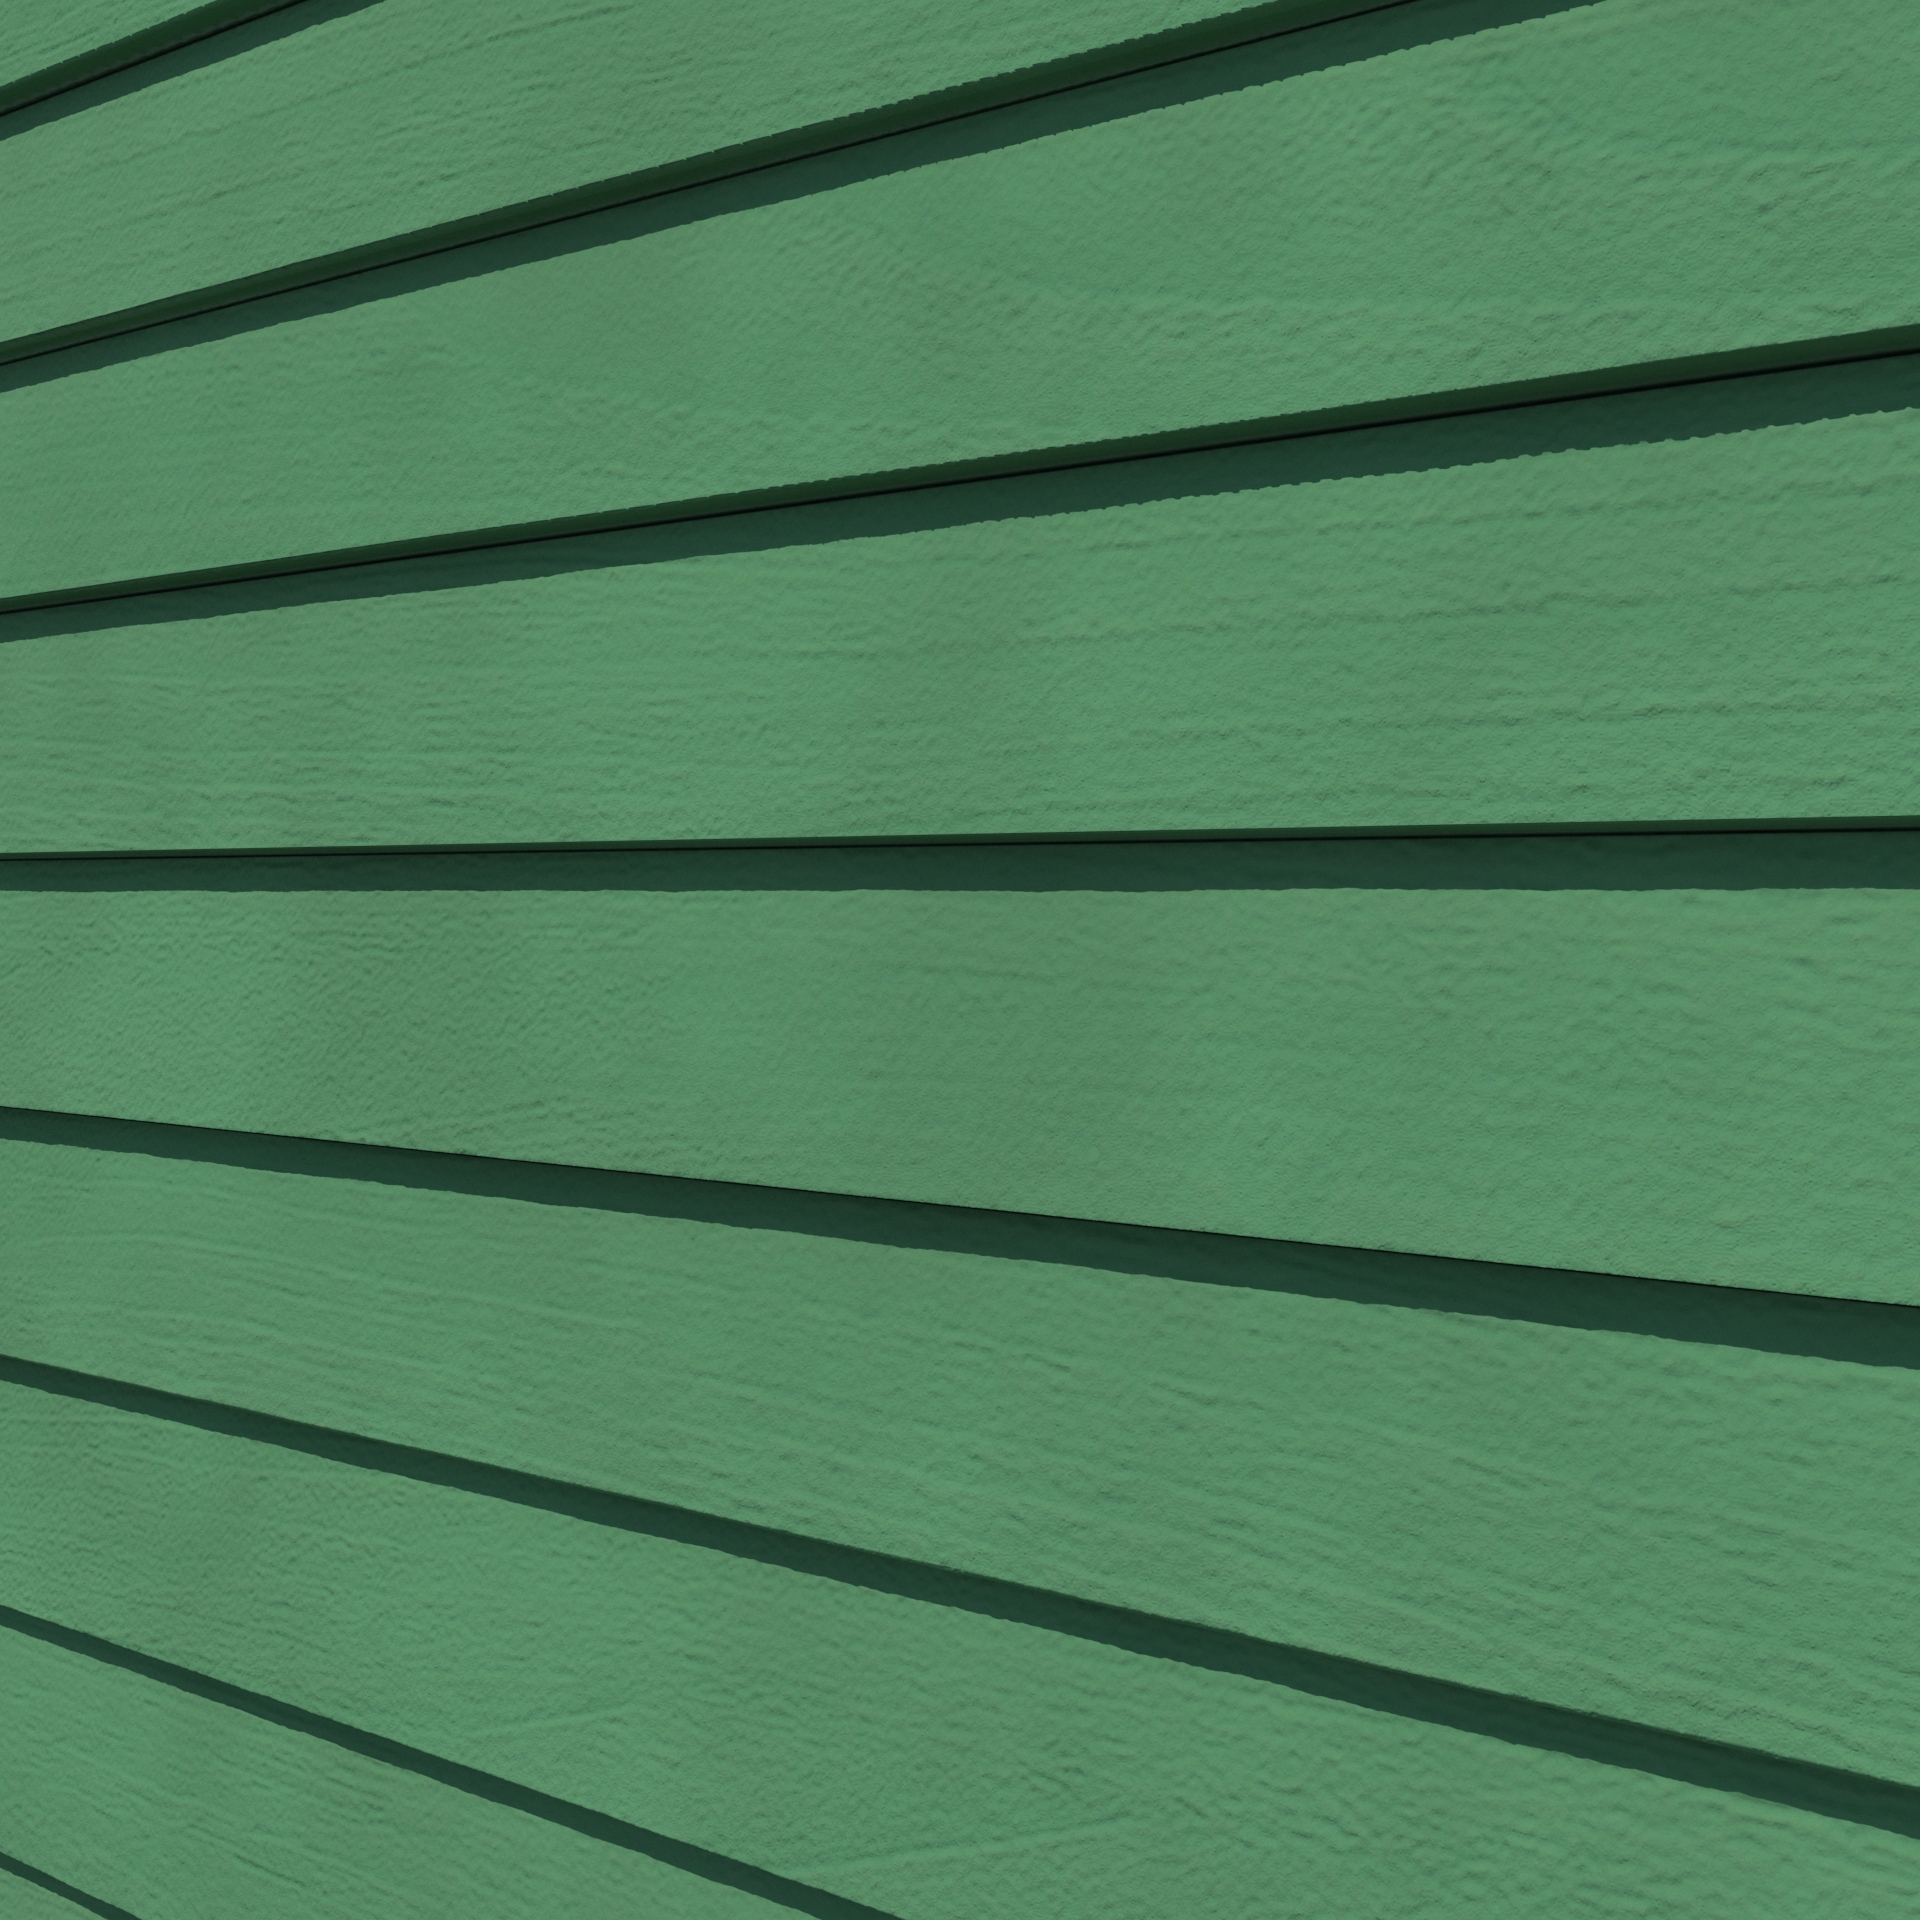 Siding AI 01A Green Preview.jpg